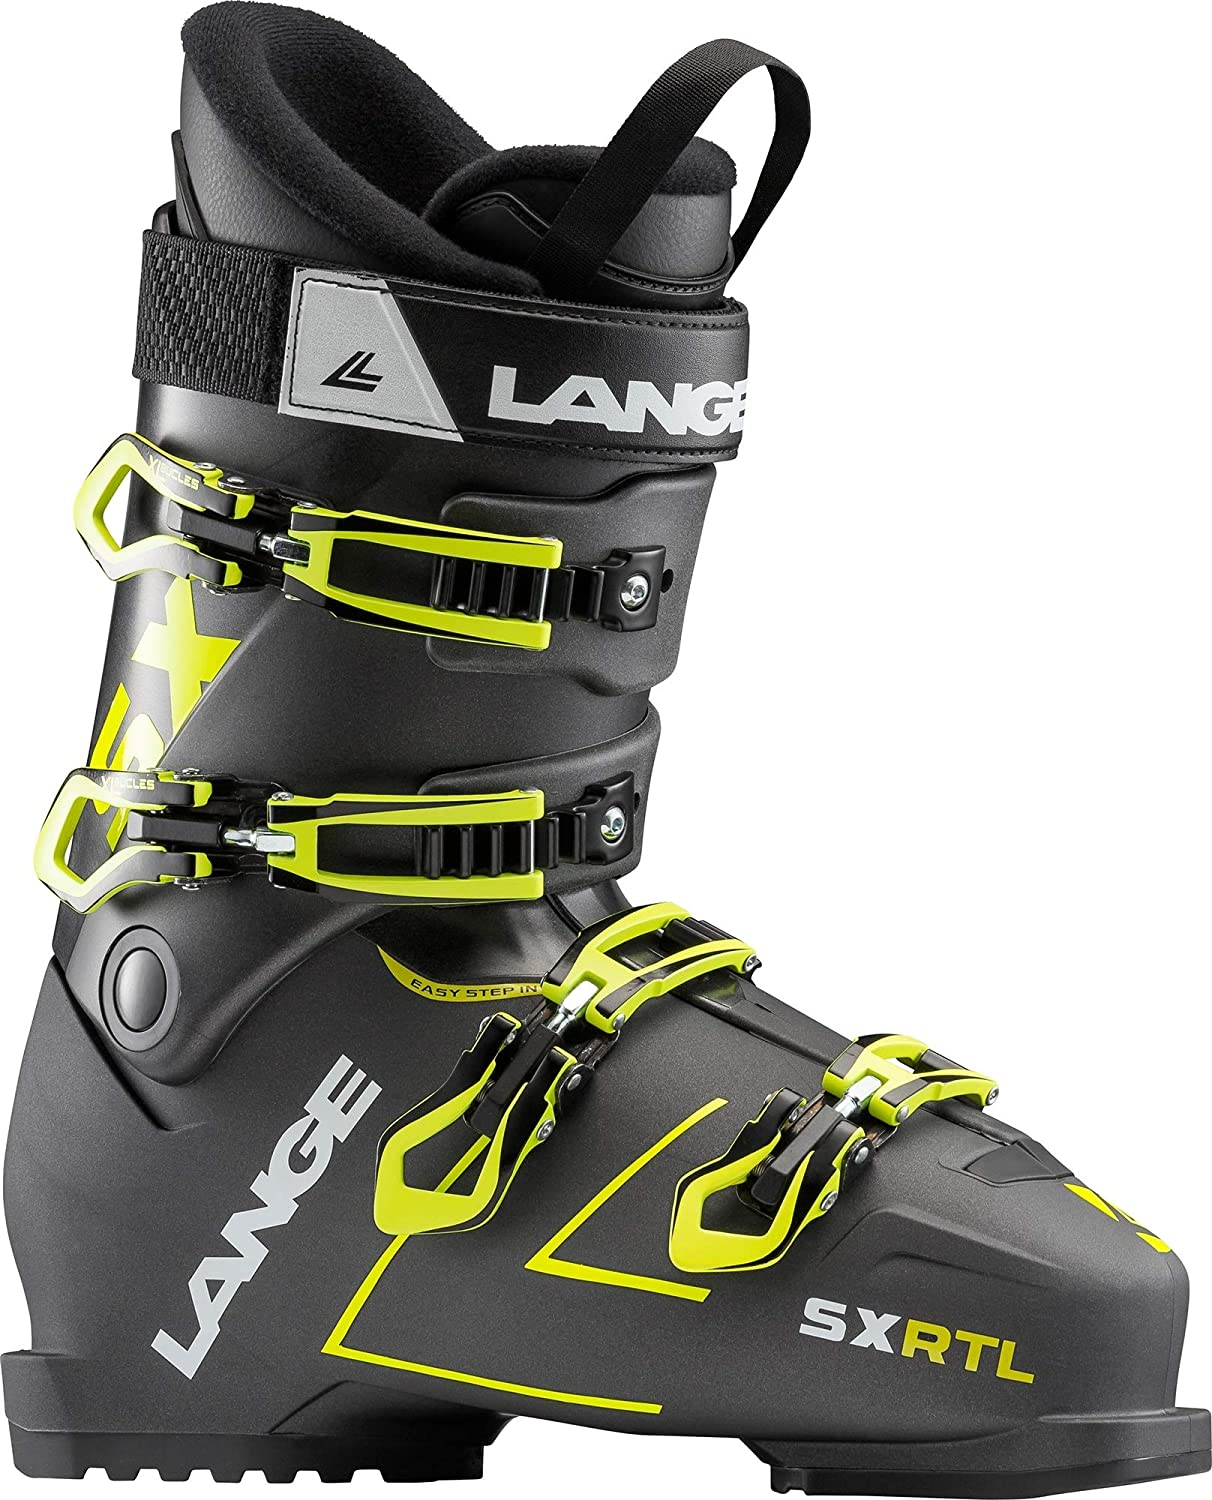 Taille /49 Chaussures De Ski Sx Rtl Anthracite-Yellow Lange Homme Homme Gris